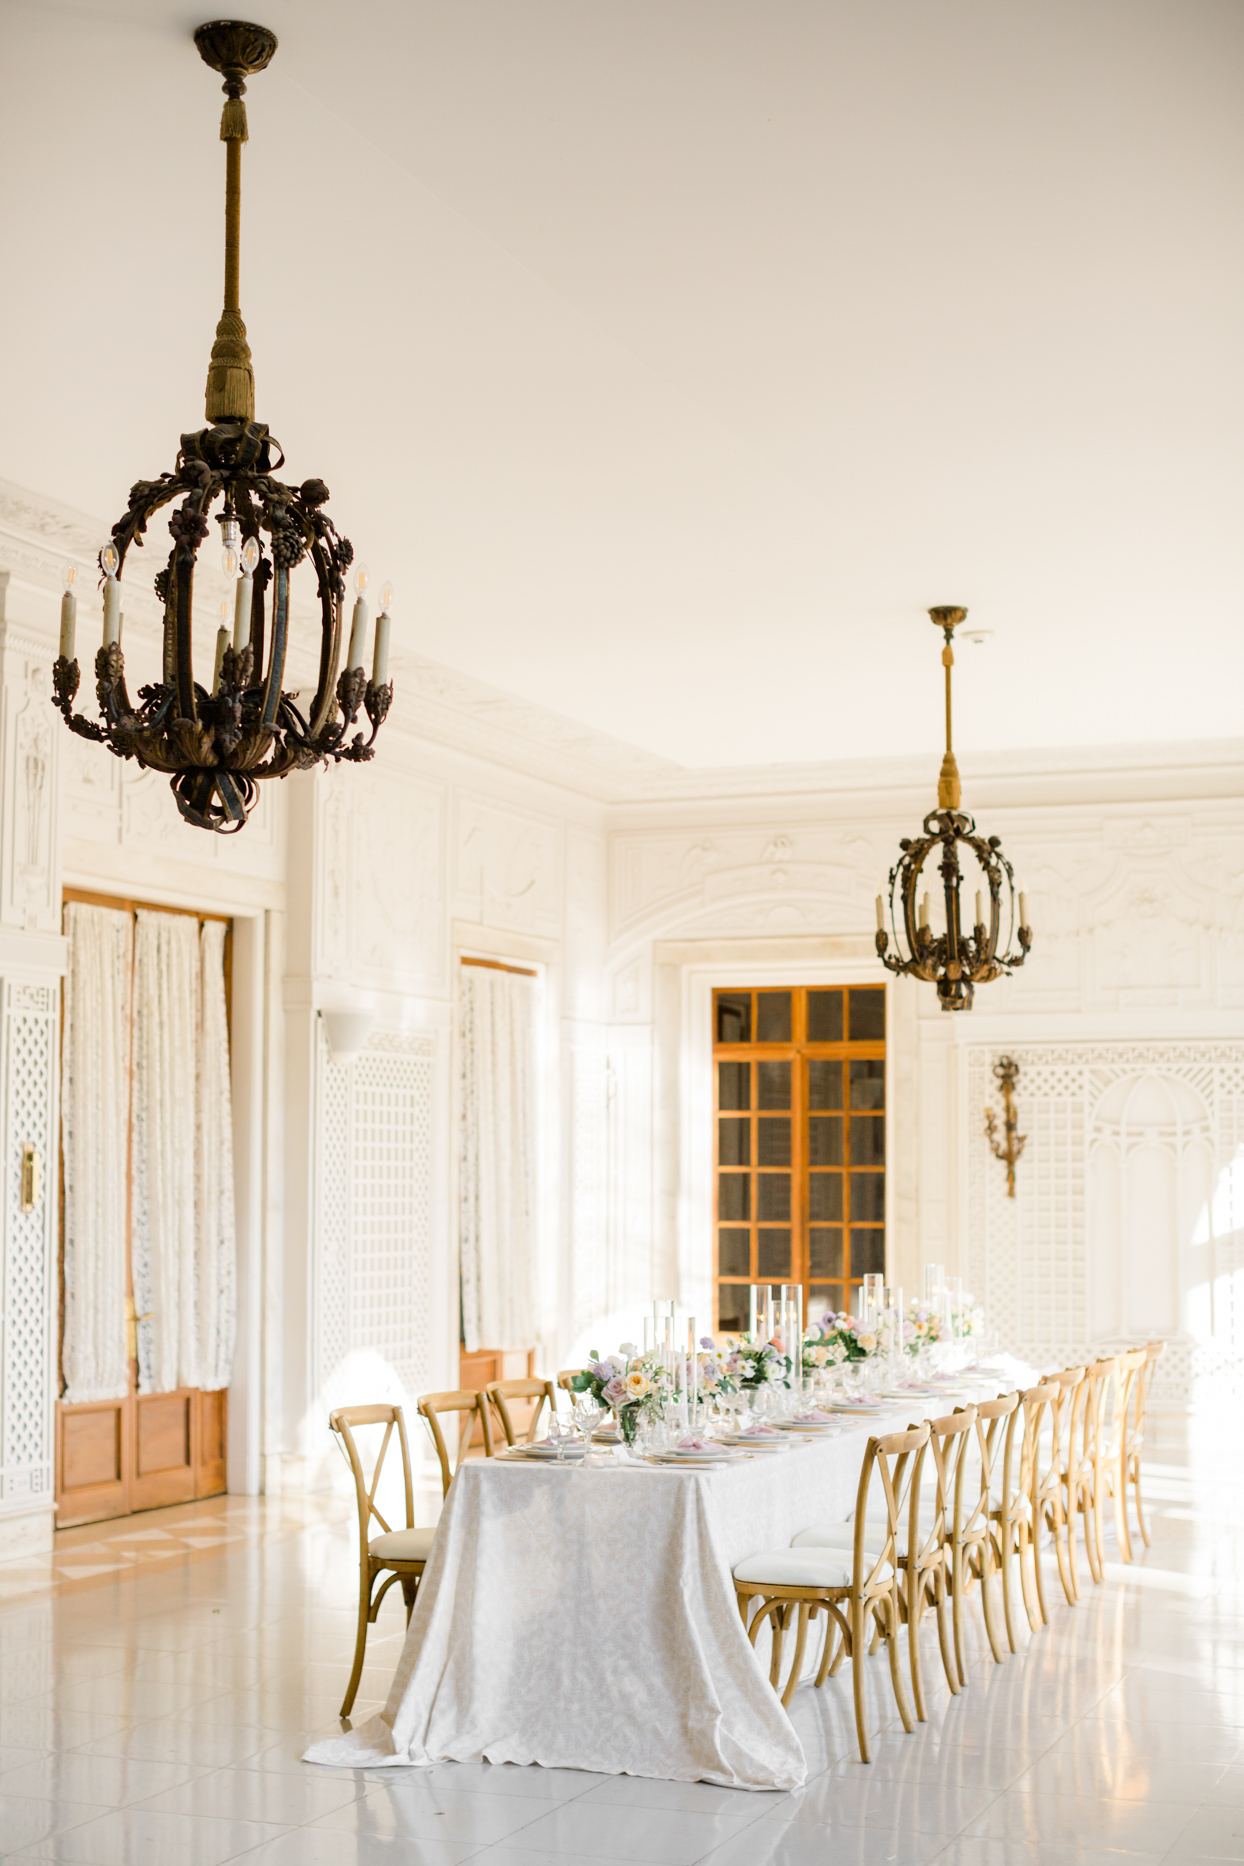 reception long table in white and gold room with antique chandeliers